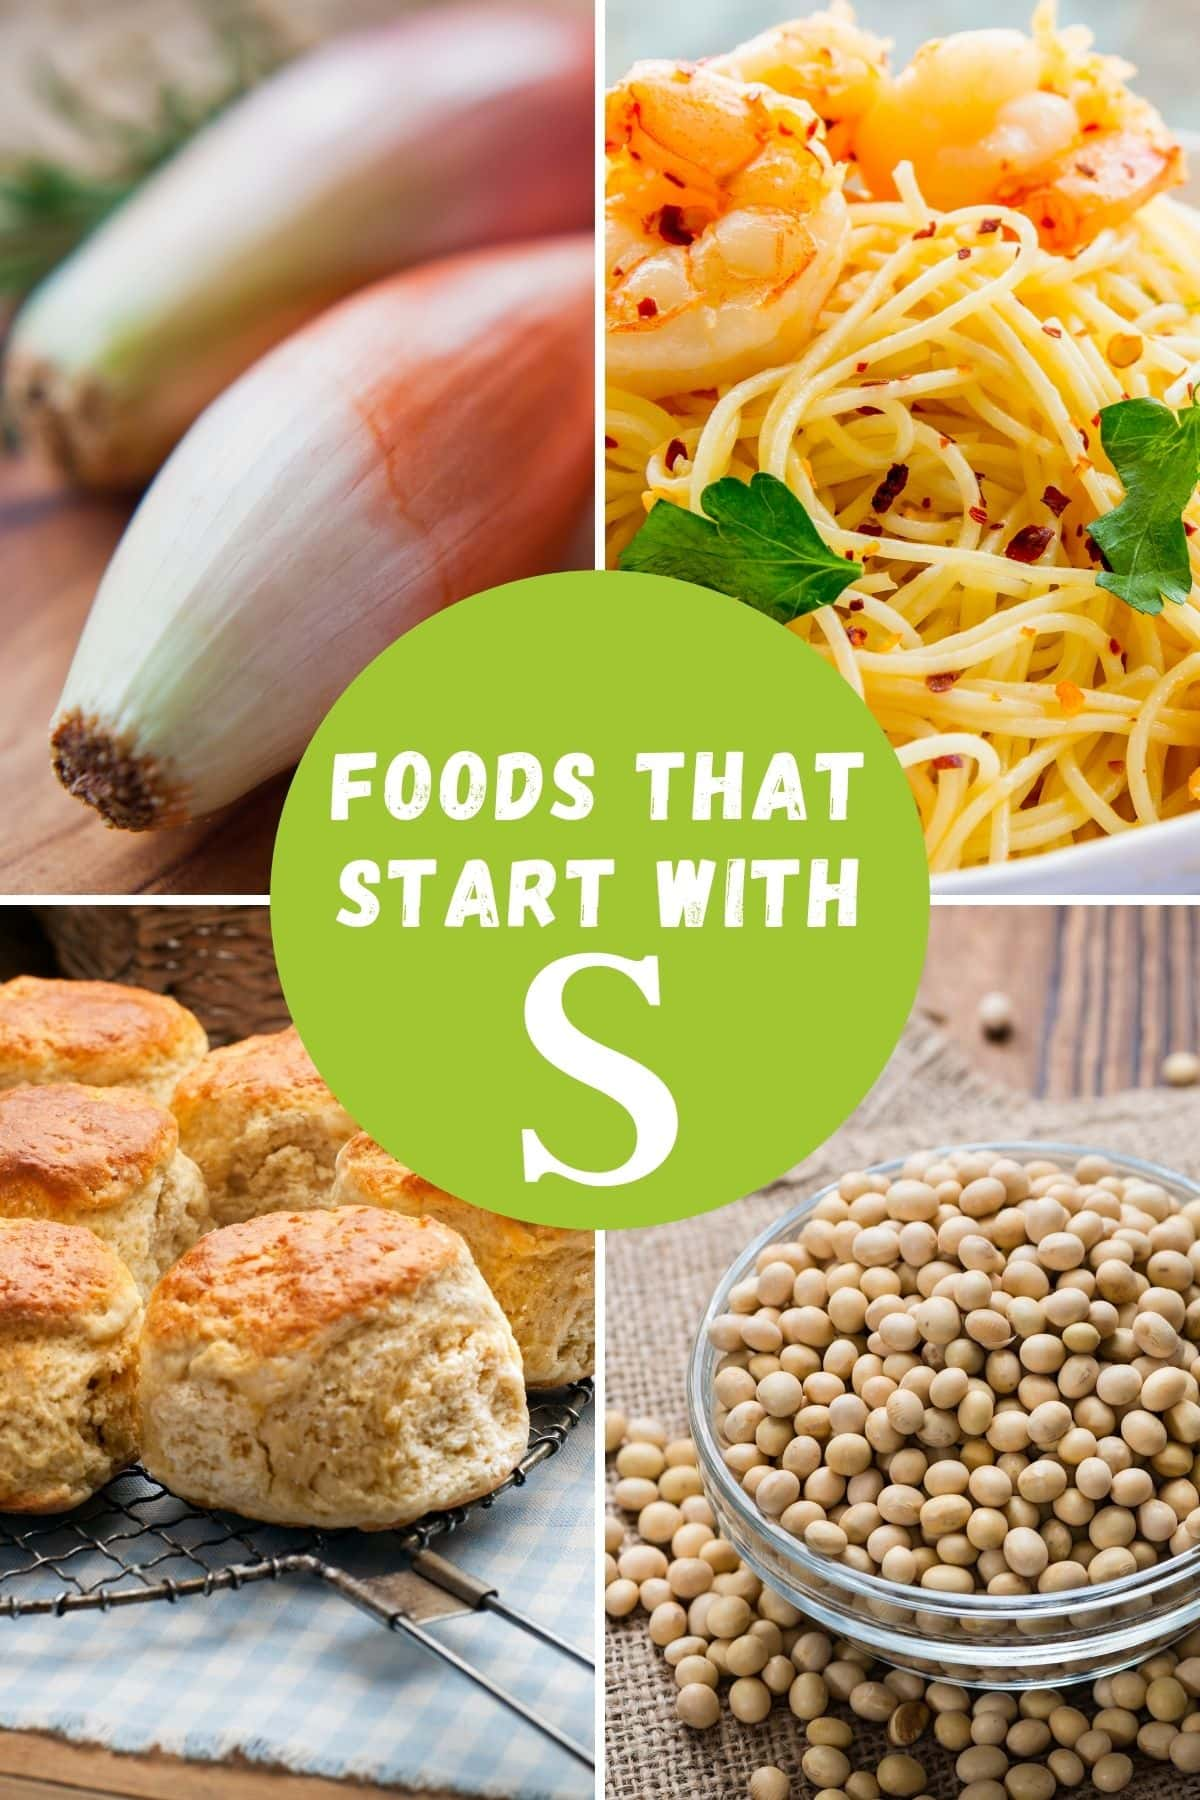 Lists of foods that begin with S